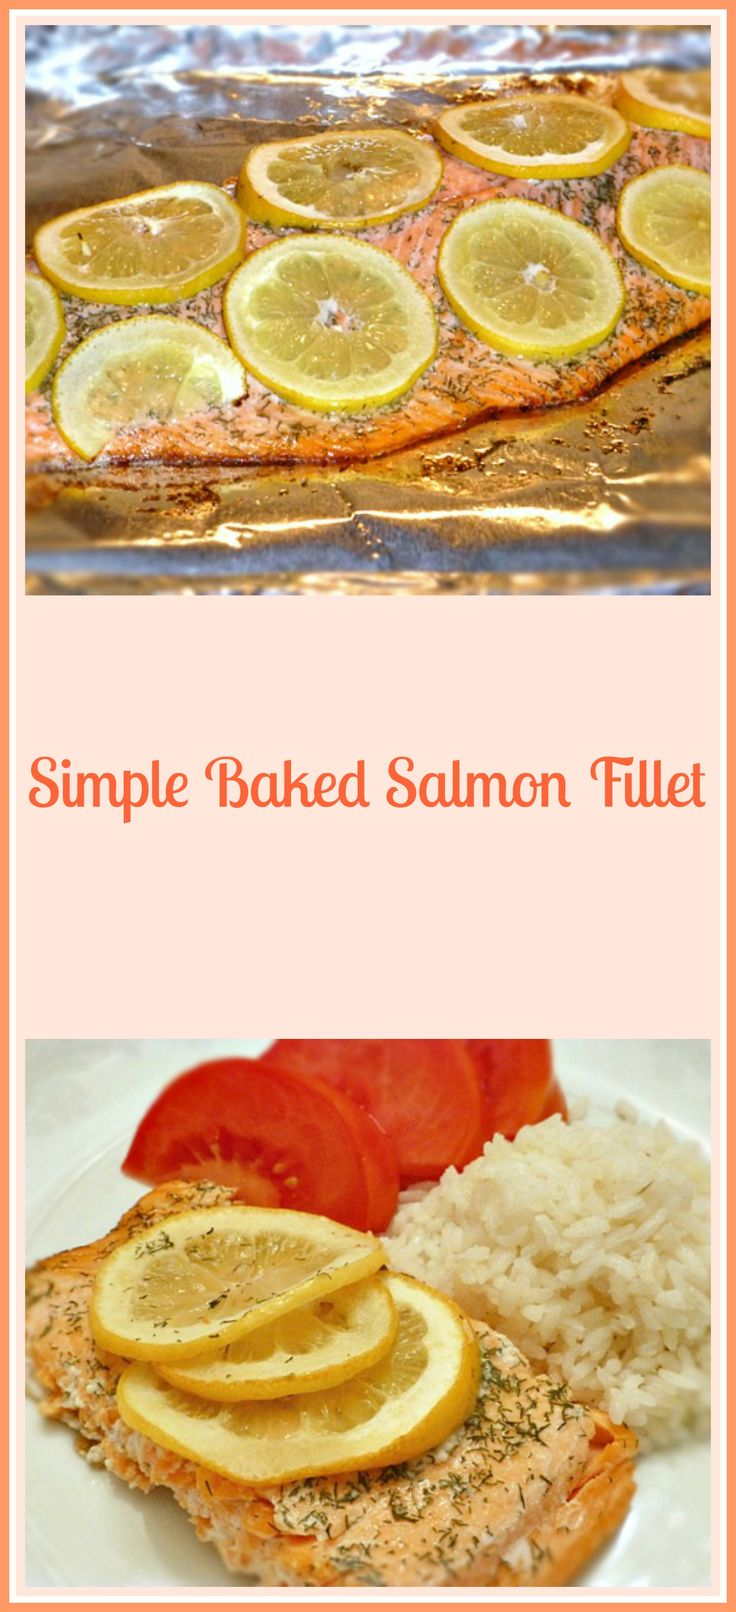 Simple Baked Salmon Fillet - Pams Daily Dish